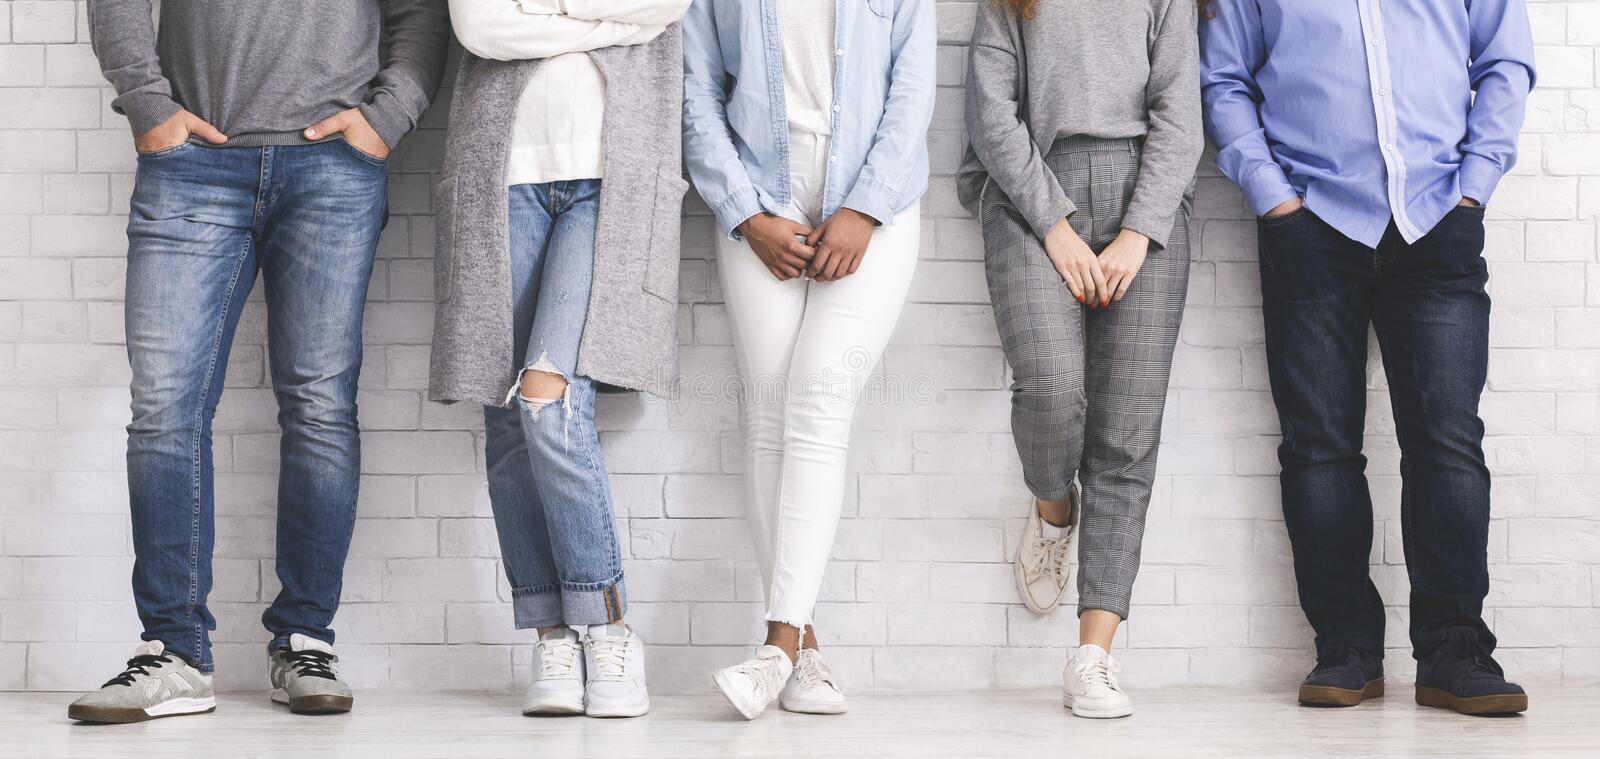 Group of people standing in row, legs or young team stock photography